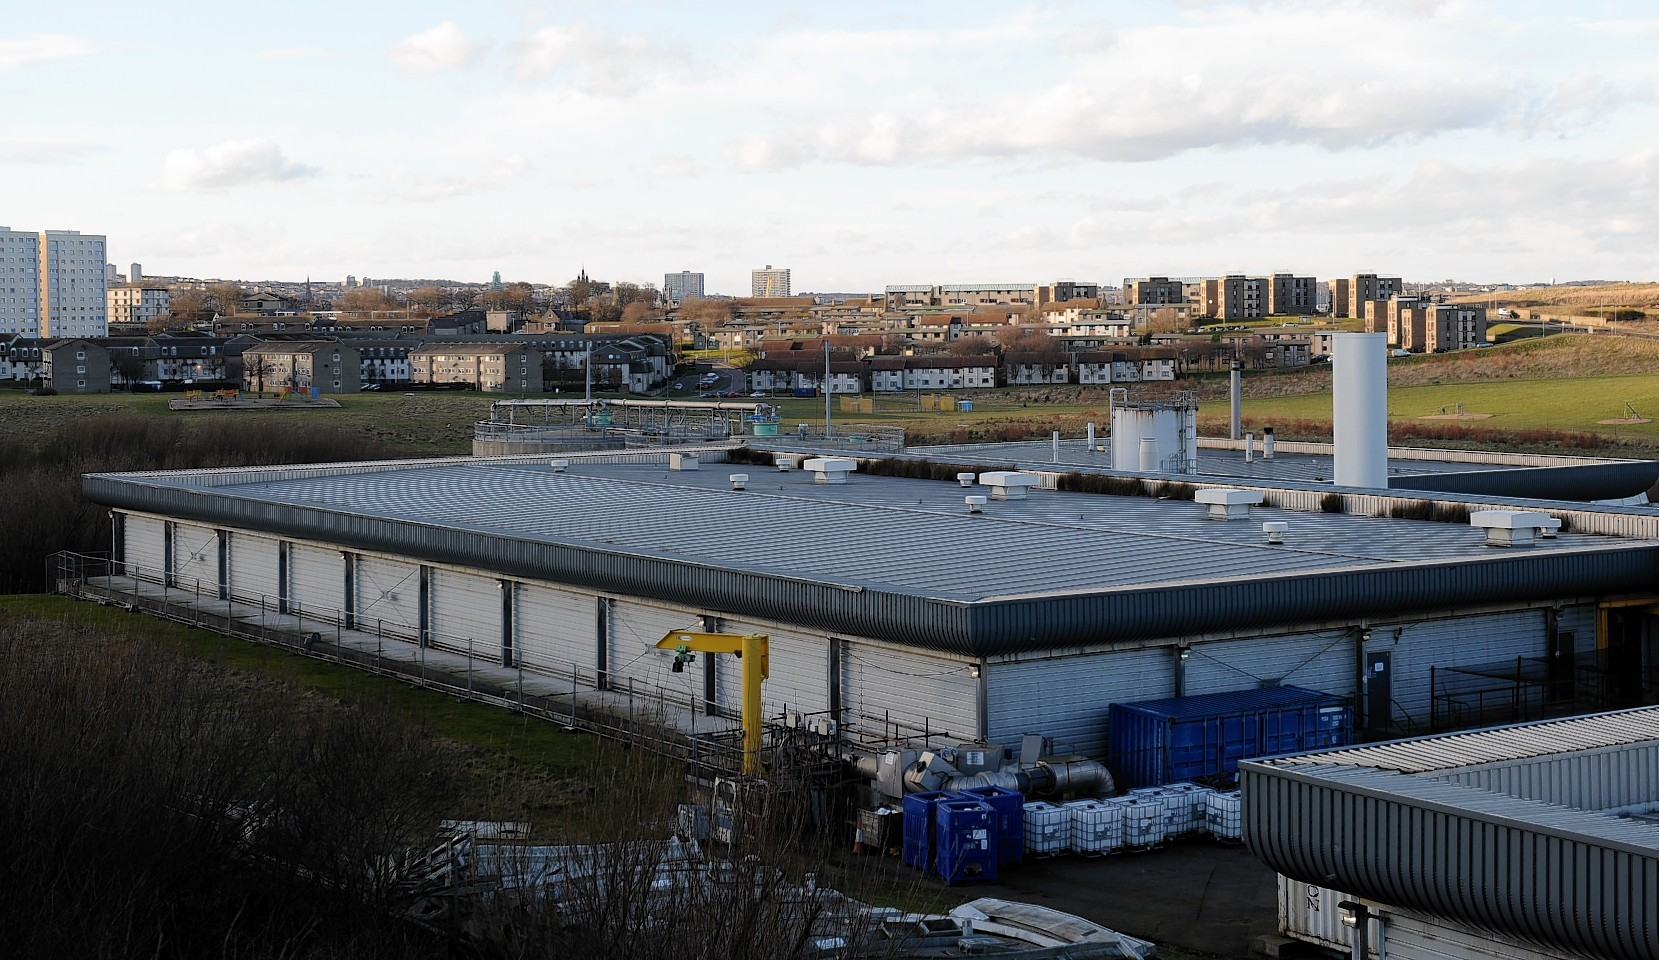 Nigg Waste Water Treatment Plant, Coast Rd, Aberdeen, with Torry in the background.